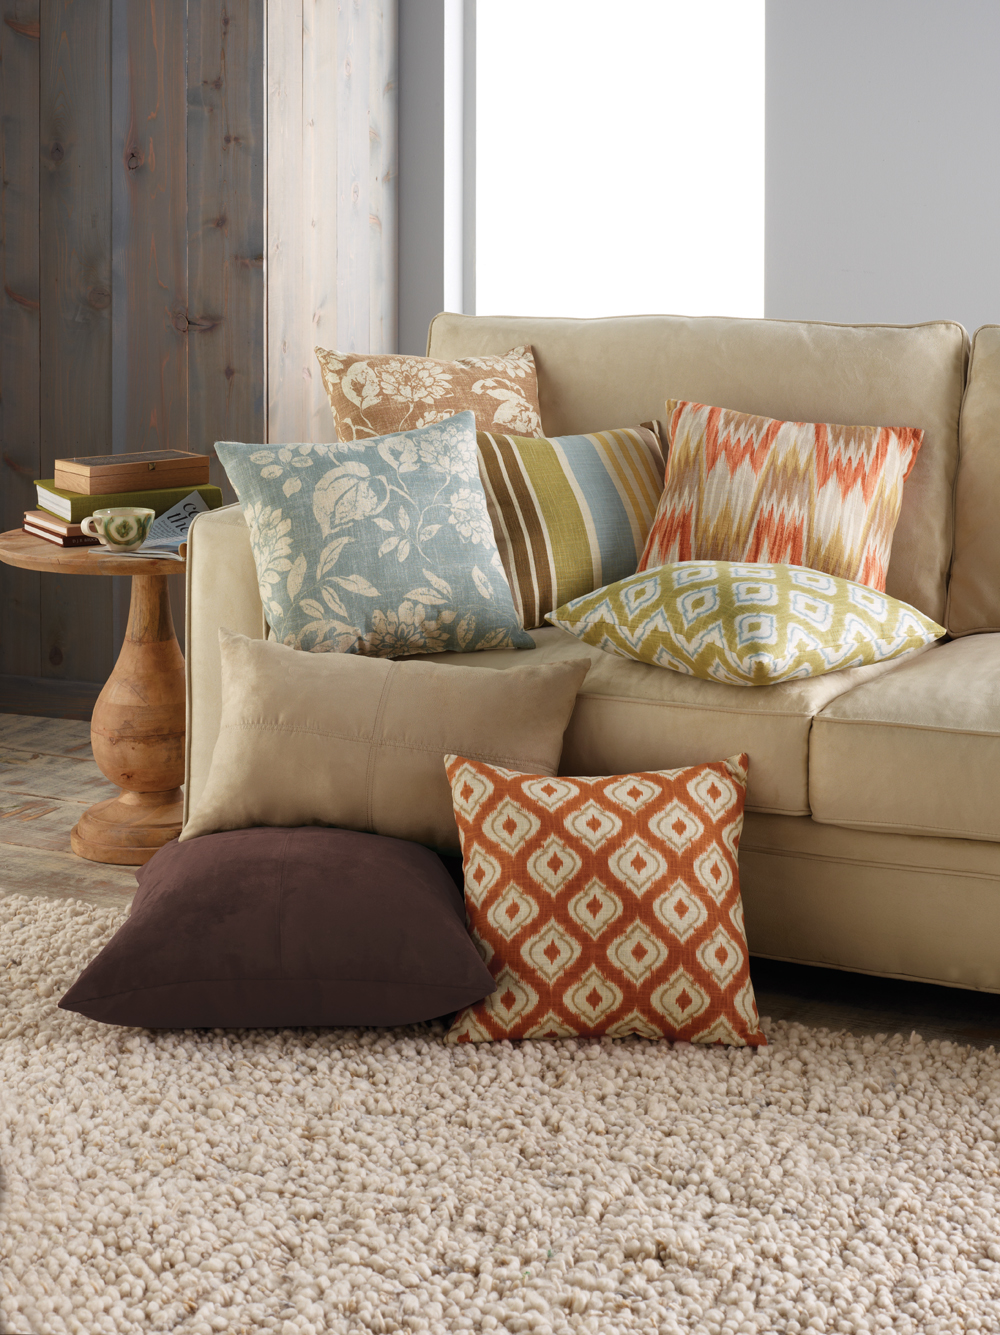 - Throws and Pillows -Adding soft throw blankets and pillows to your couch and chairs will instantly soften up the room. Don't be afraid to mix textures to make it even more inviting.